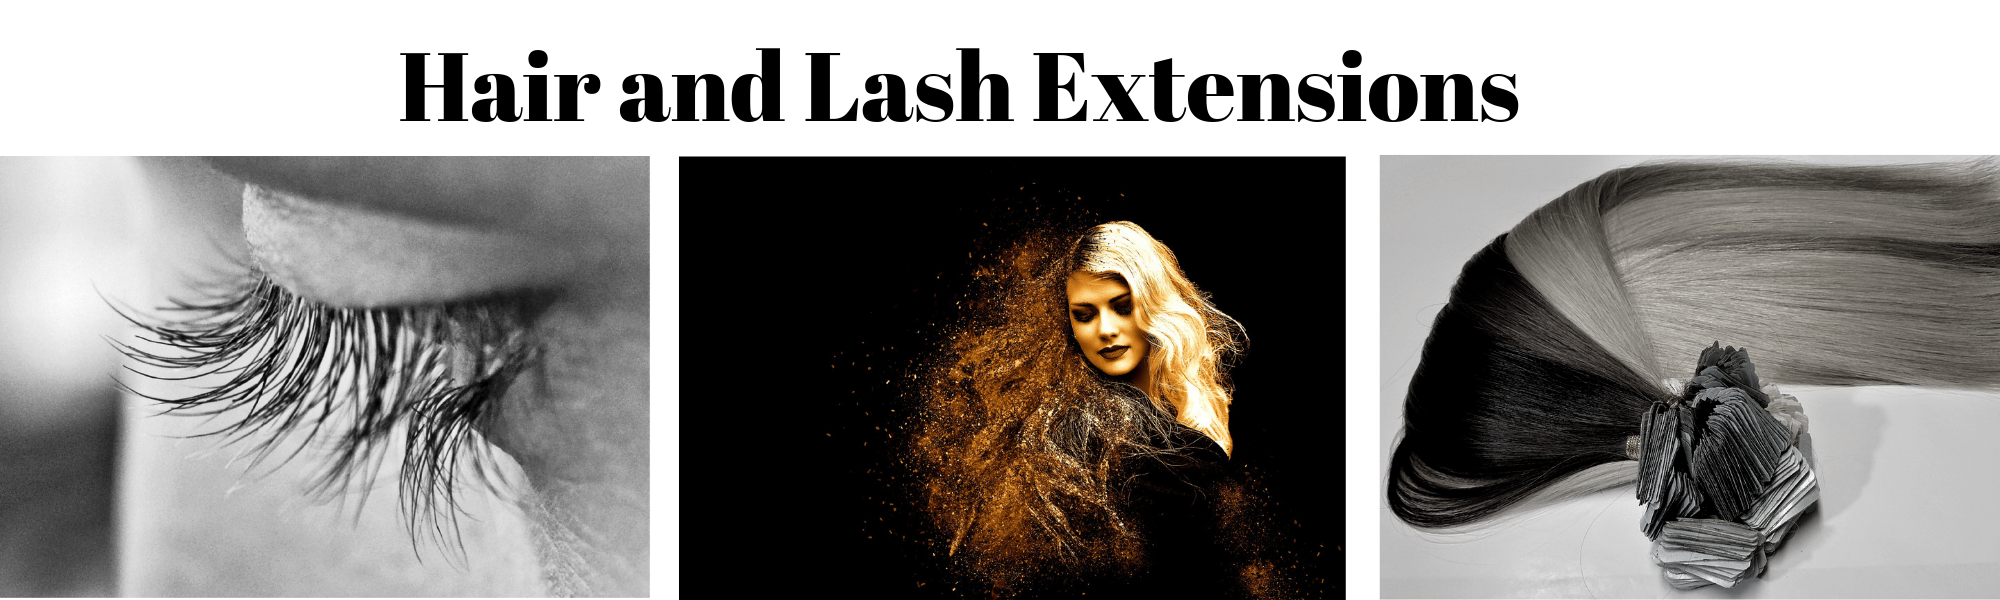 Extension Category Banner